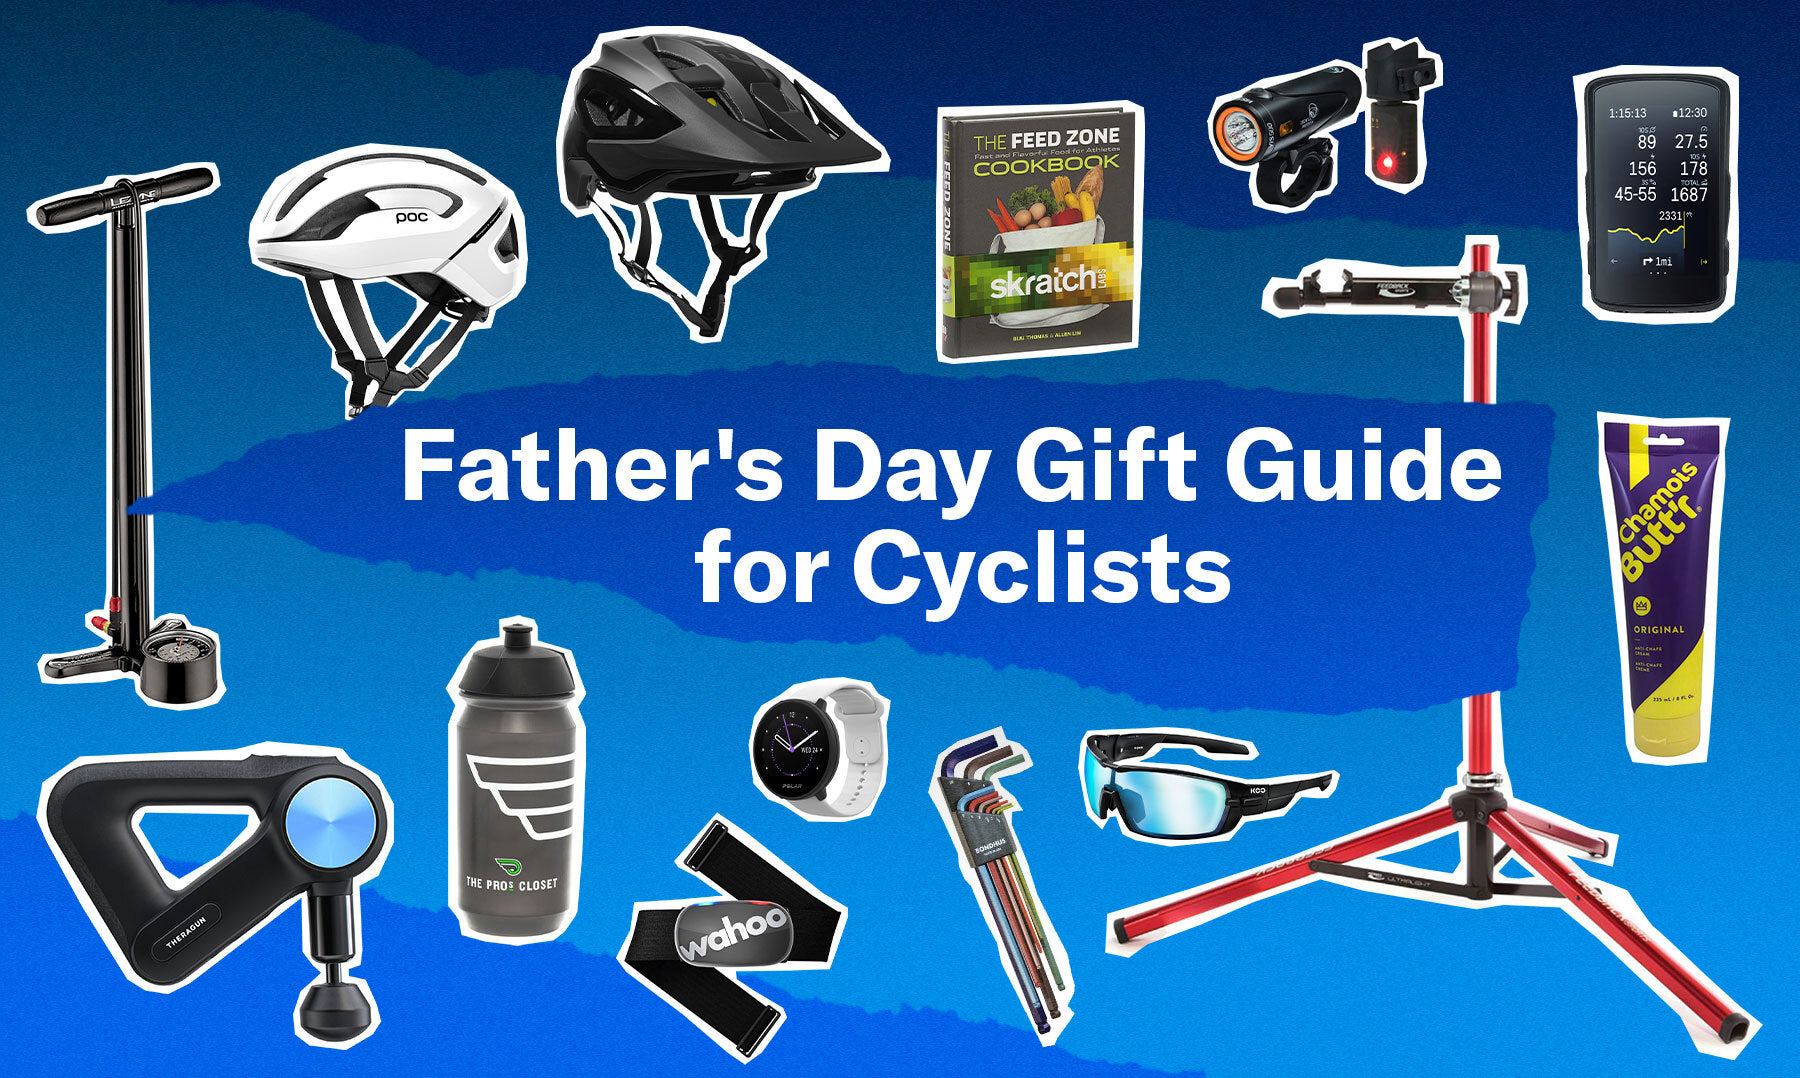 Father's day bike gift idea guide for cyclists